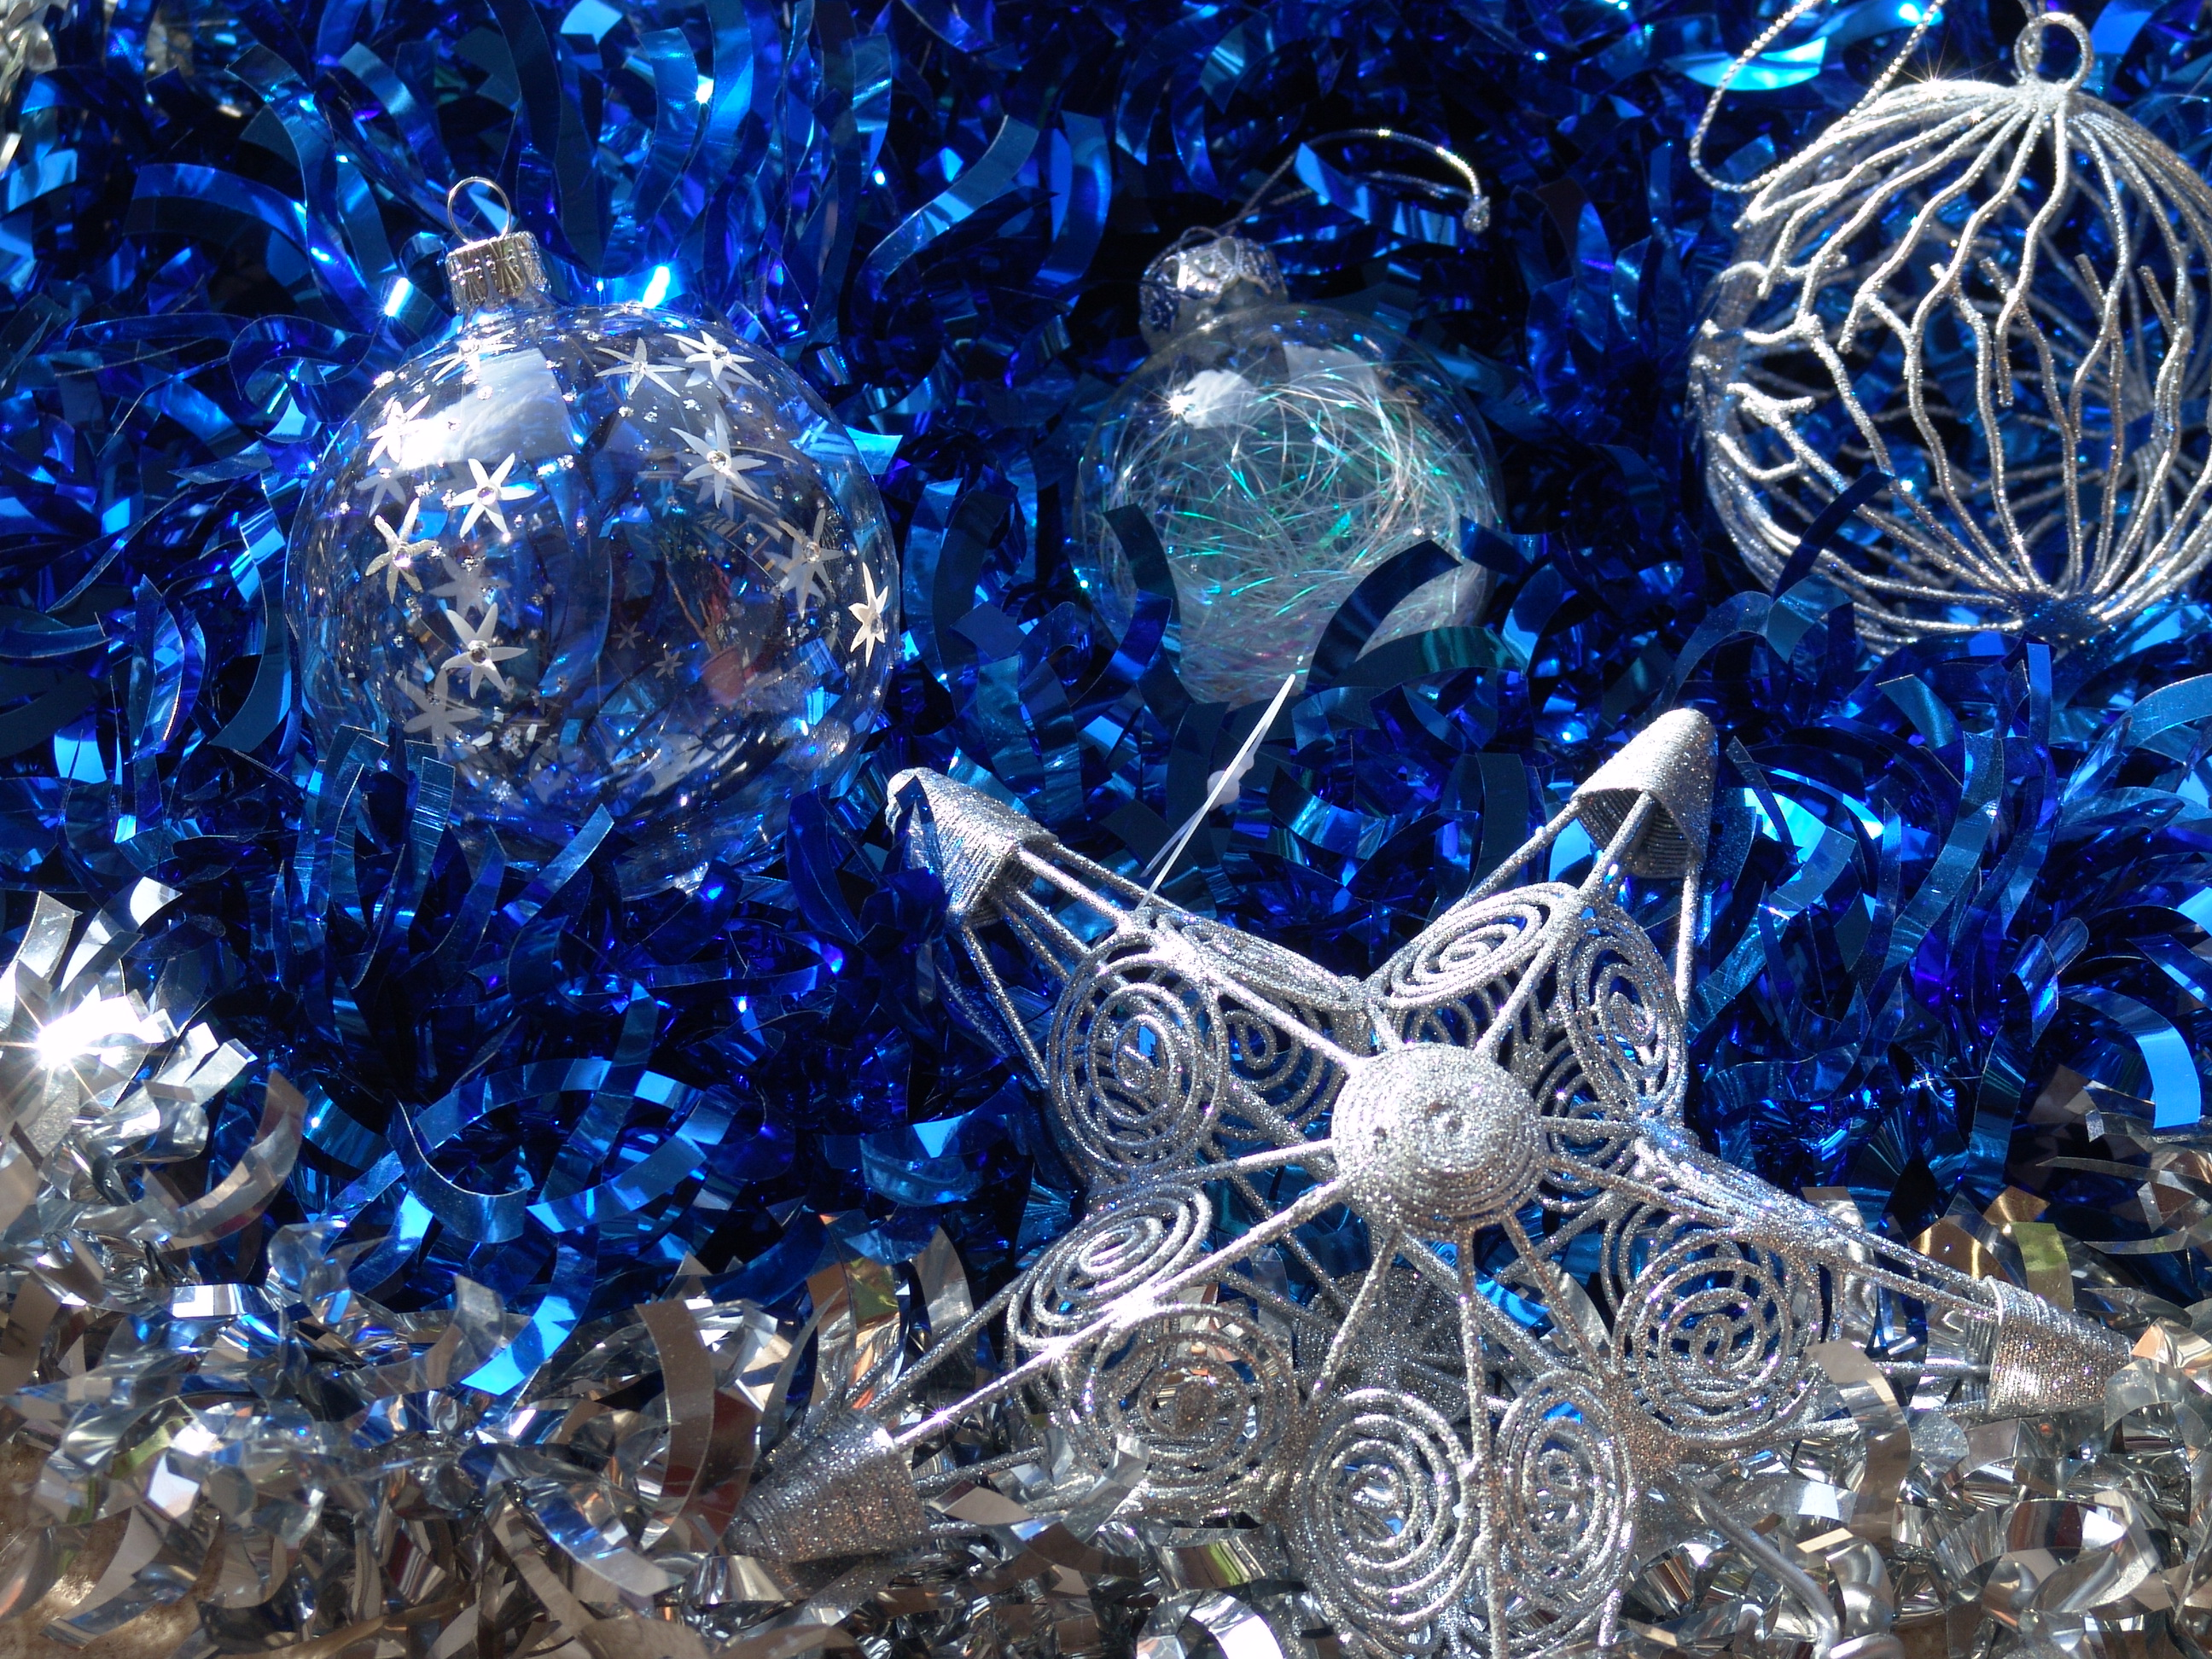 http://upload.wikimedia.org/wikipedia/en/a/ab/Blue_Ornaments.jpg